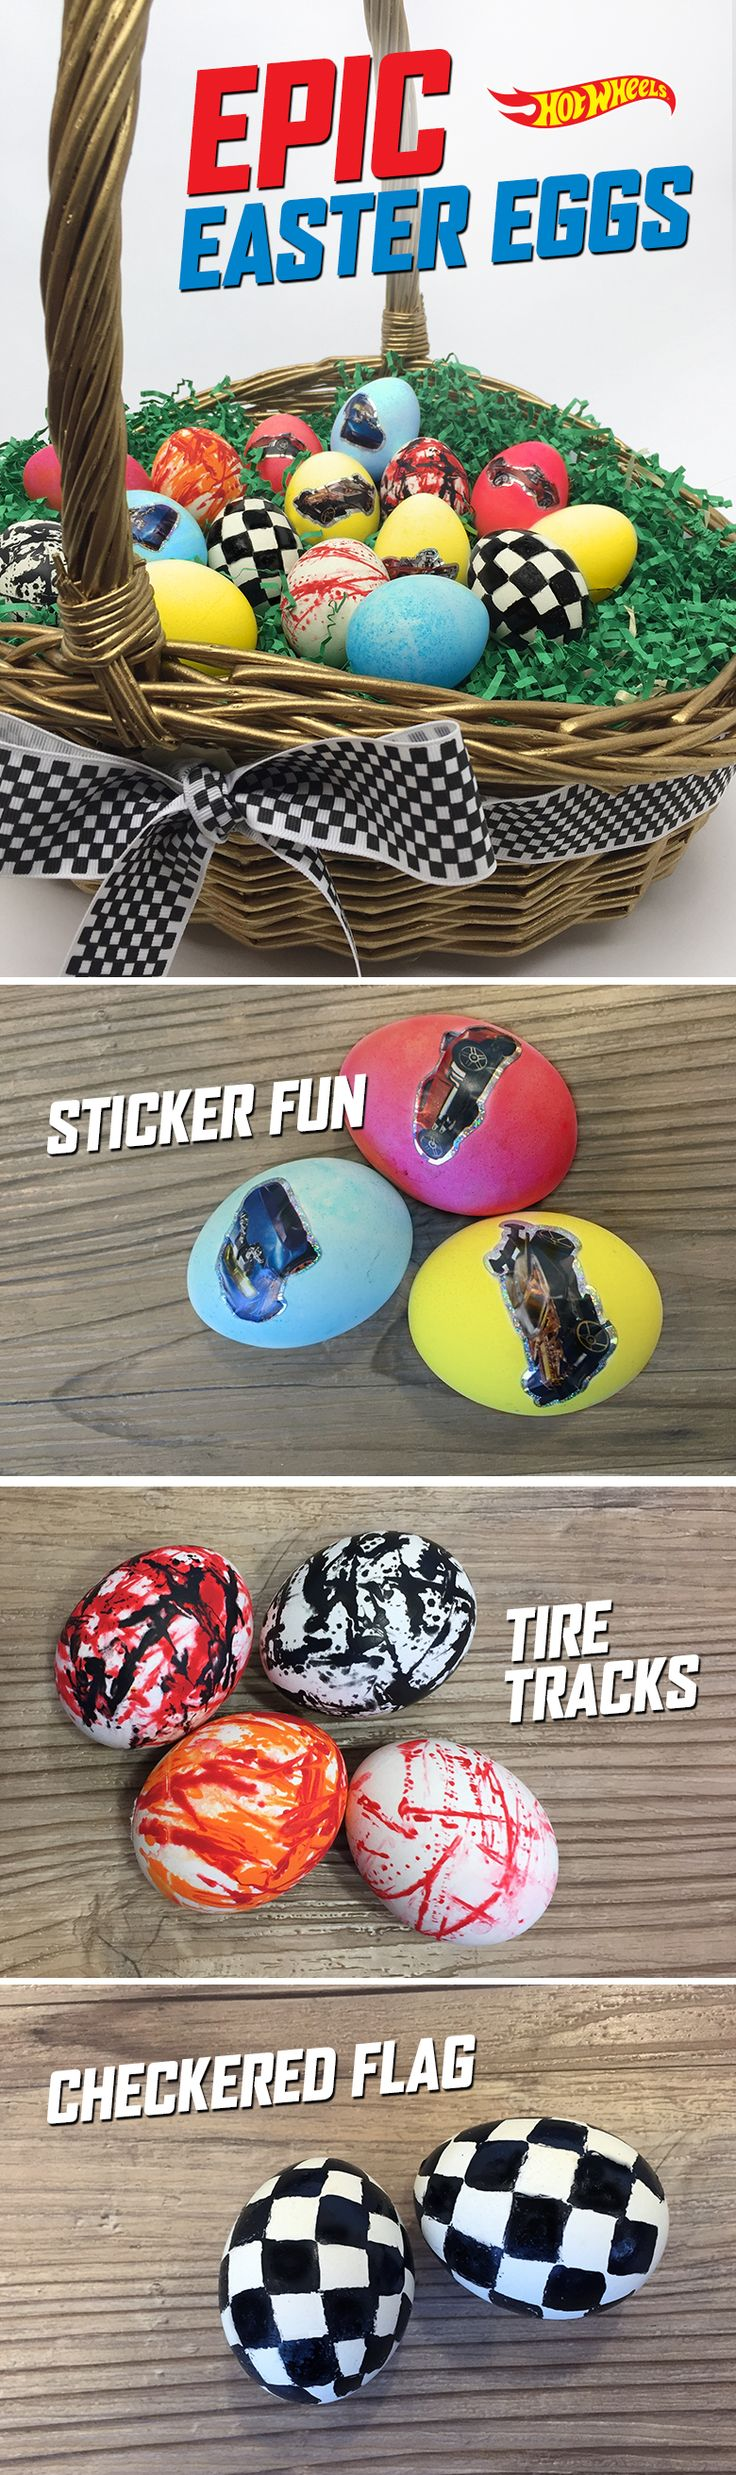 1000+ images about Fast, Fun Arts & Crafts on Pinterest | Toys ...